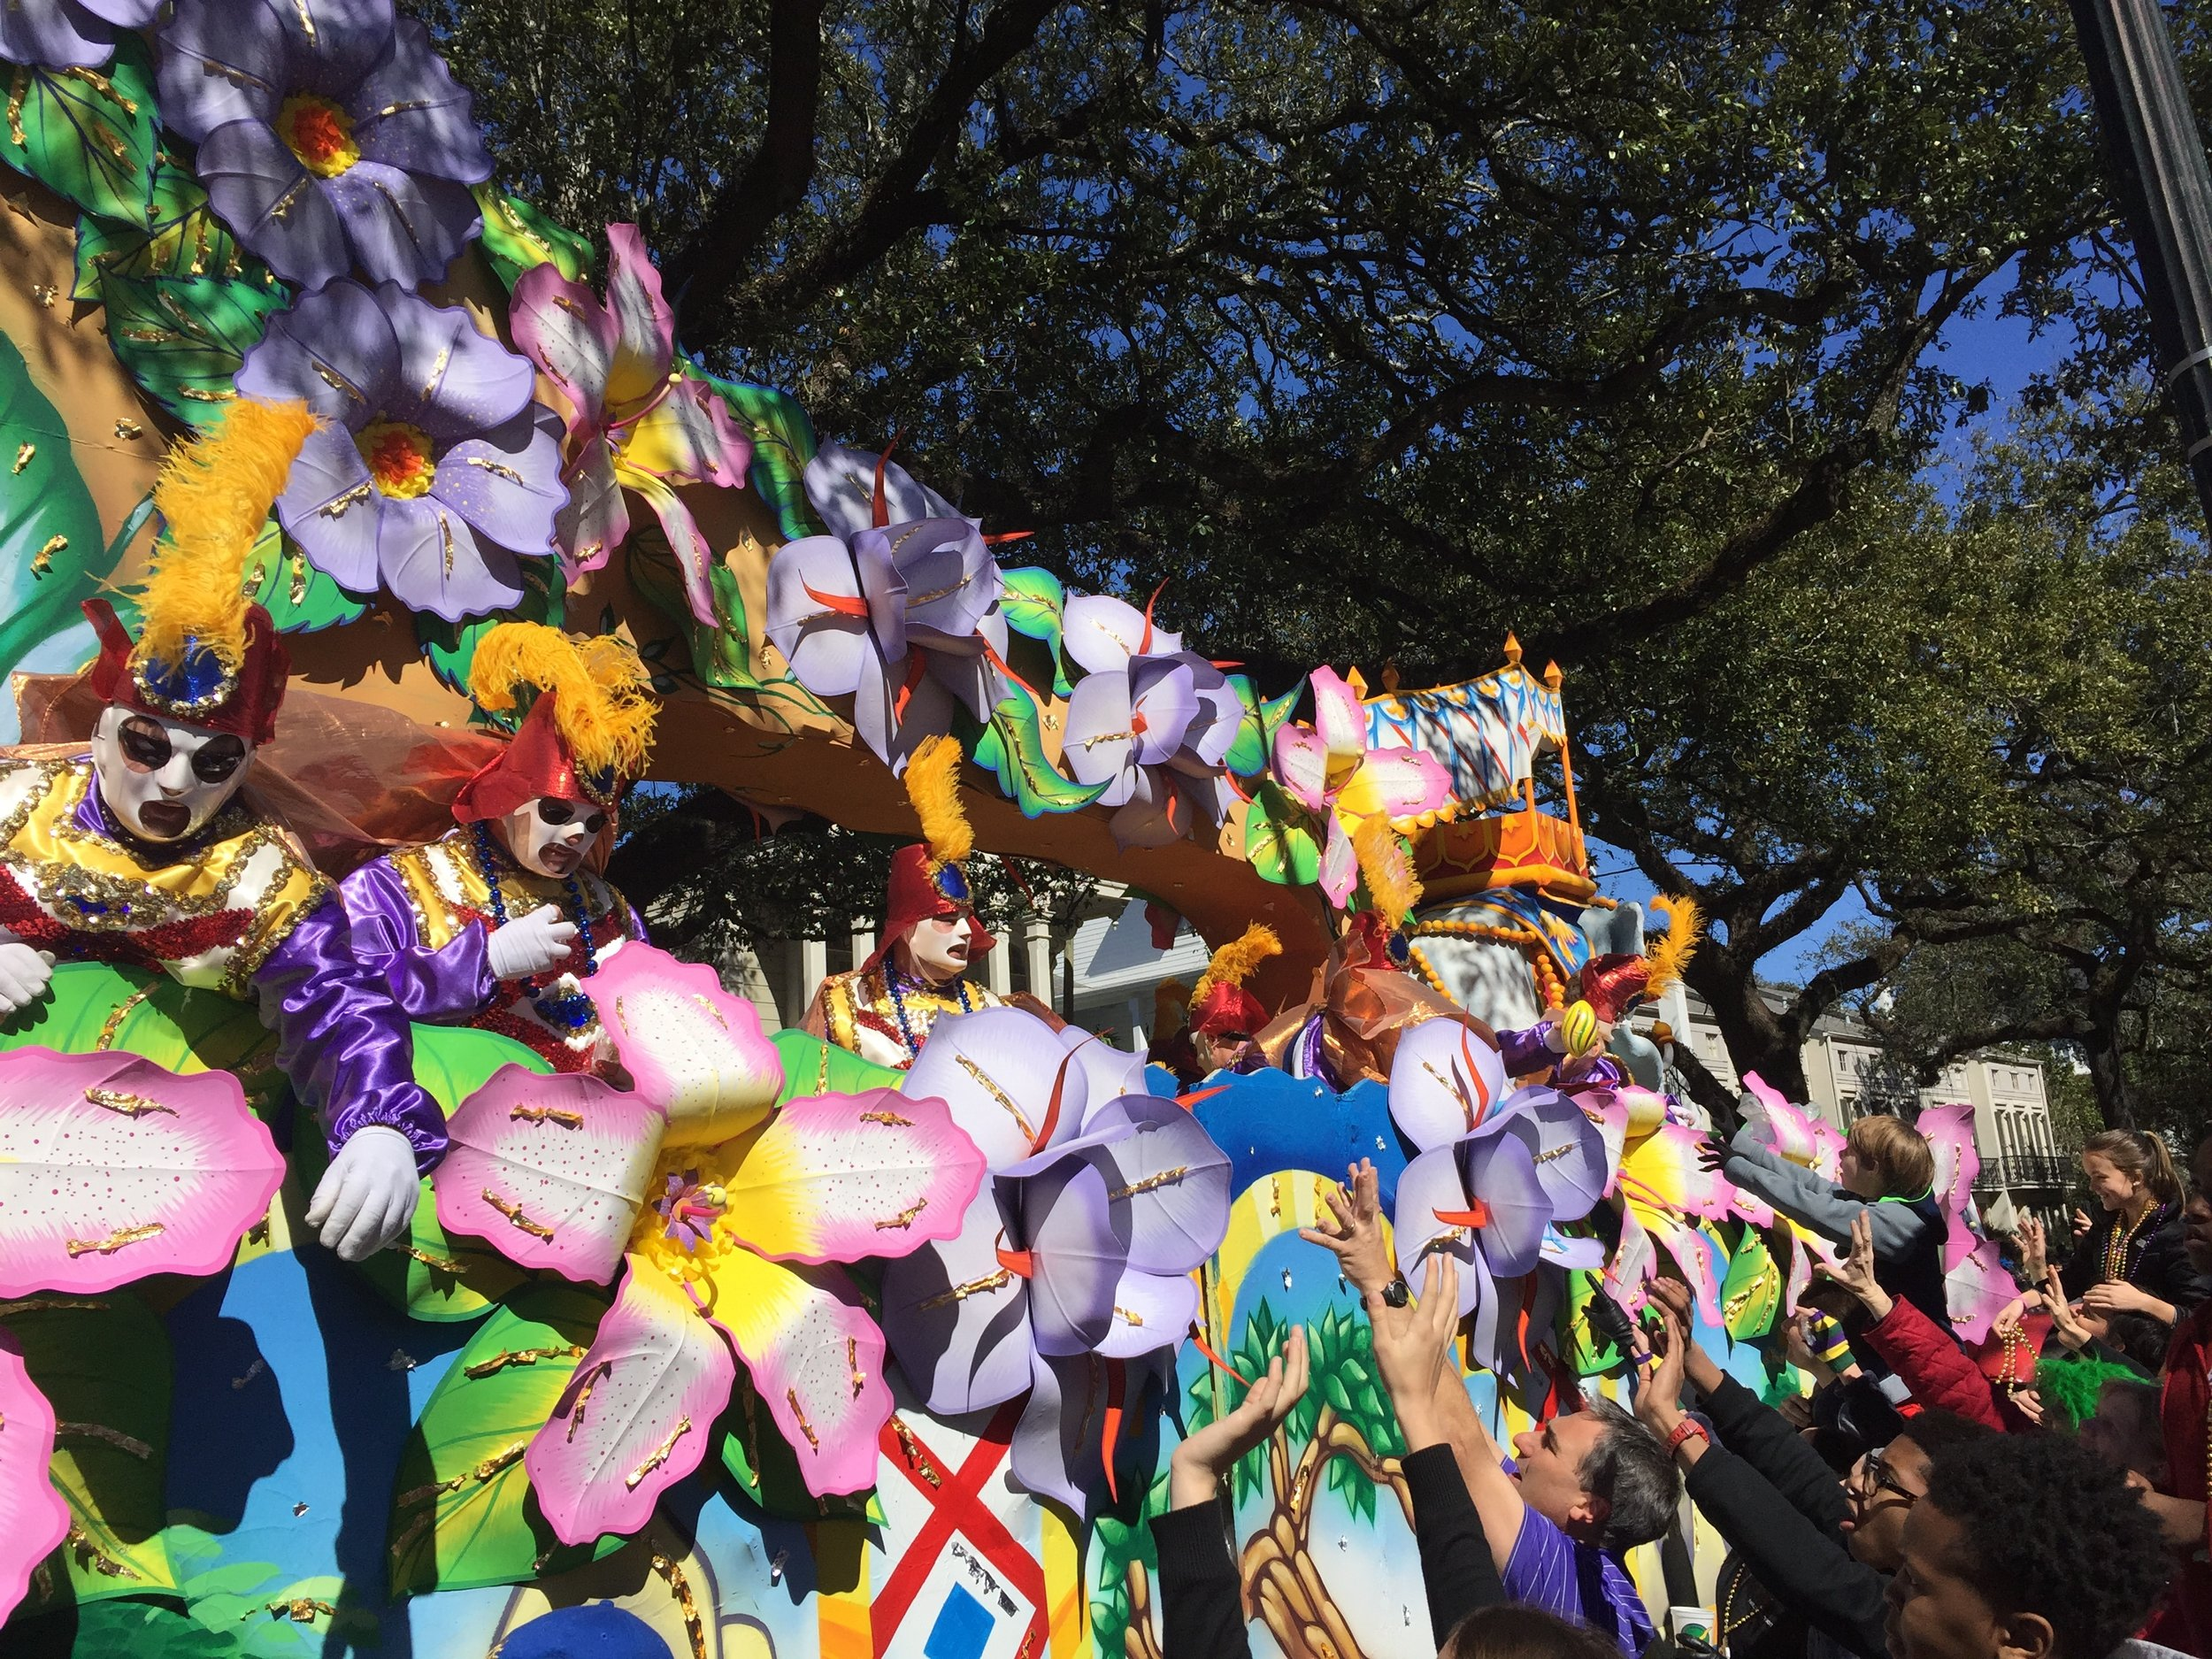 Mardi Gras parade float rolling through Uptown in New Orleans.